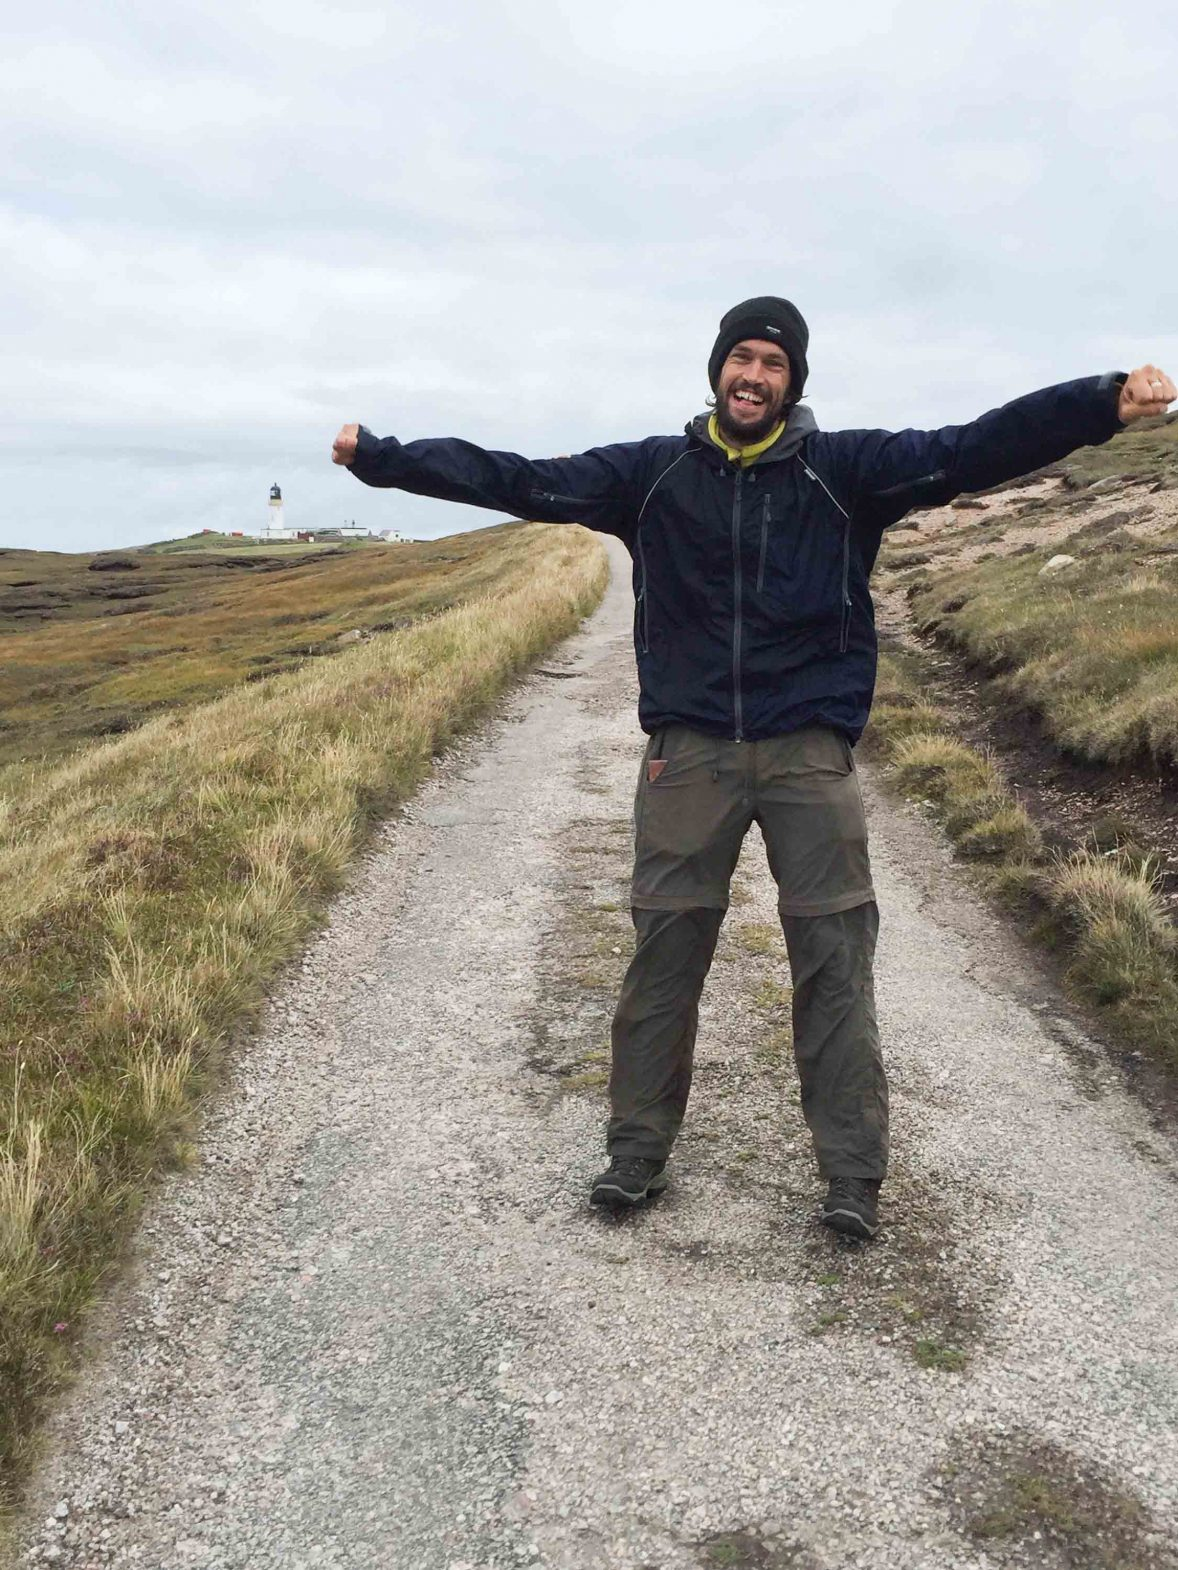 Writer Luke Waterson arriving at the end of the Cape Wrath Trail with Cape Wrath lighthouse in the background.